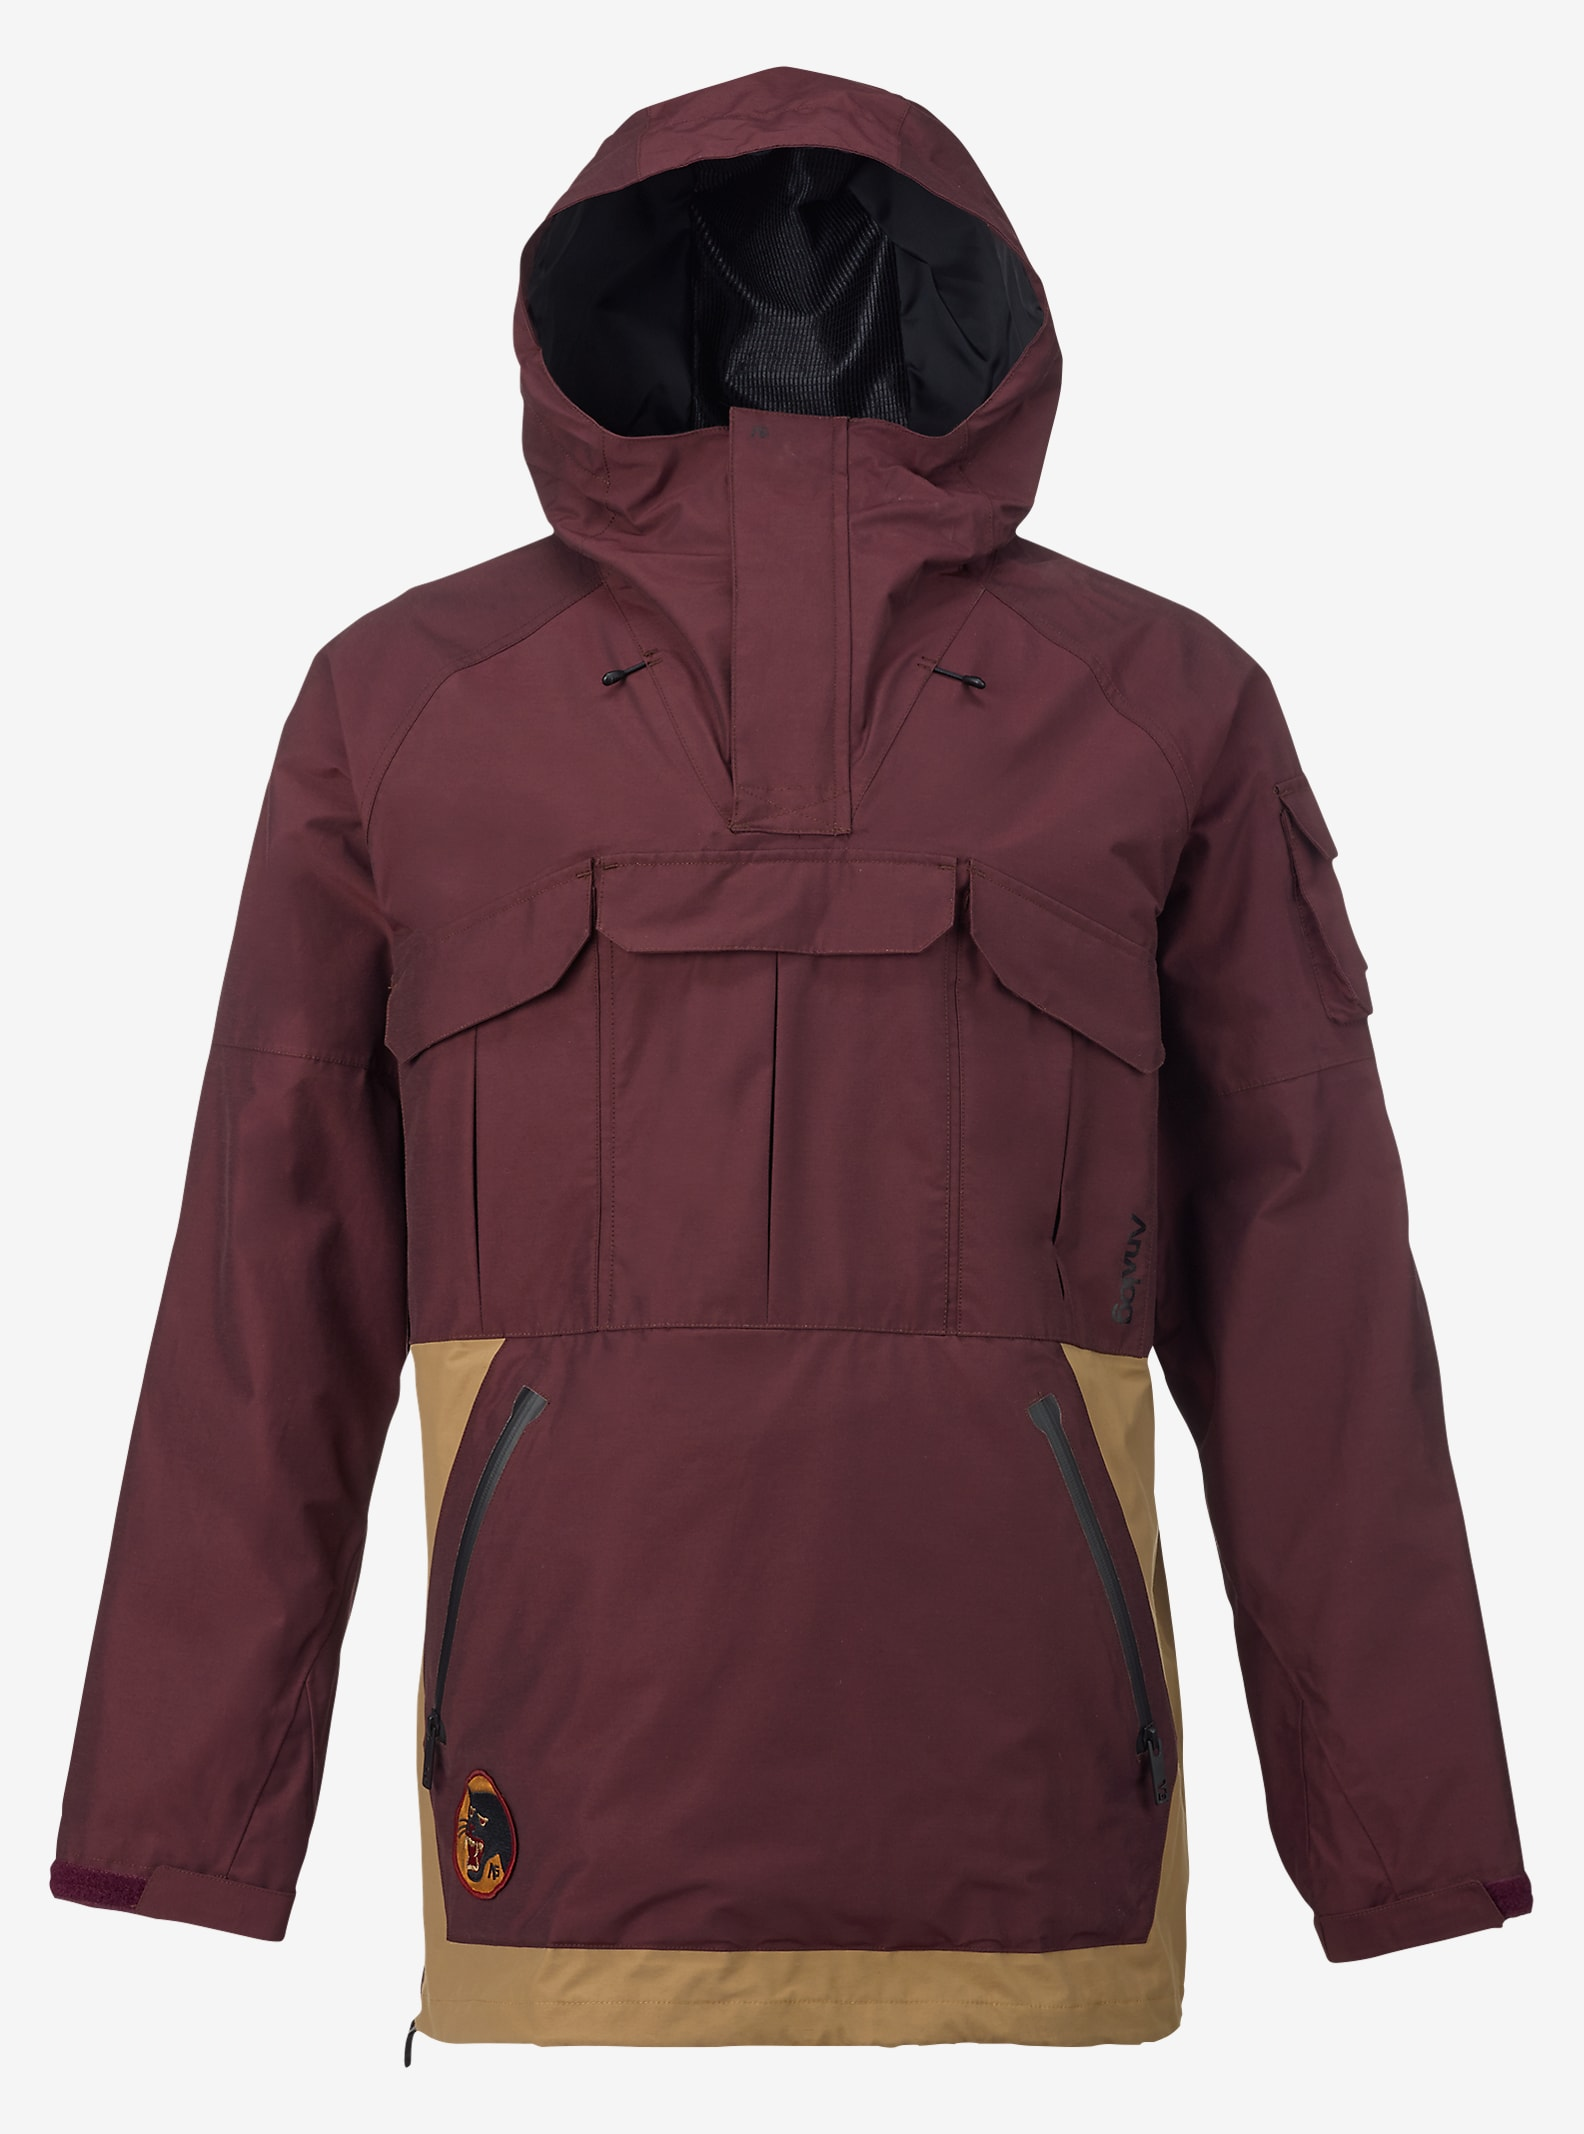 Analog Highmark Anorak Jacket shown in Deep Purple / Masonite